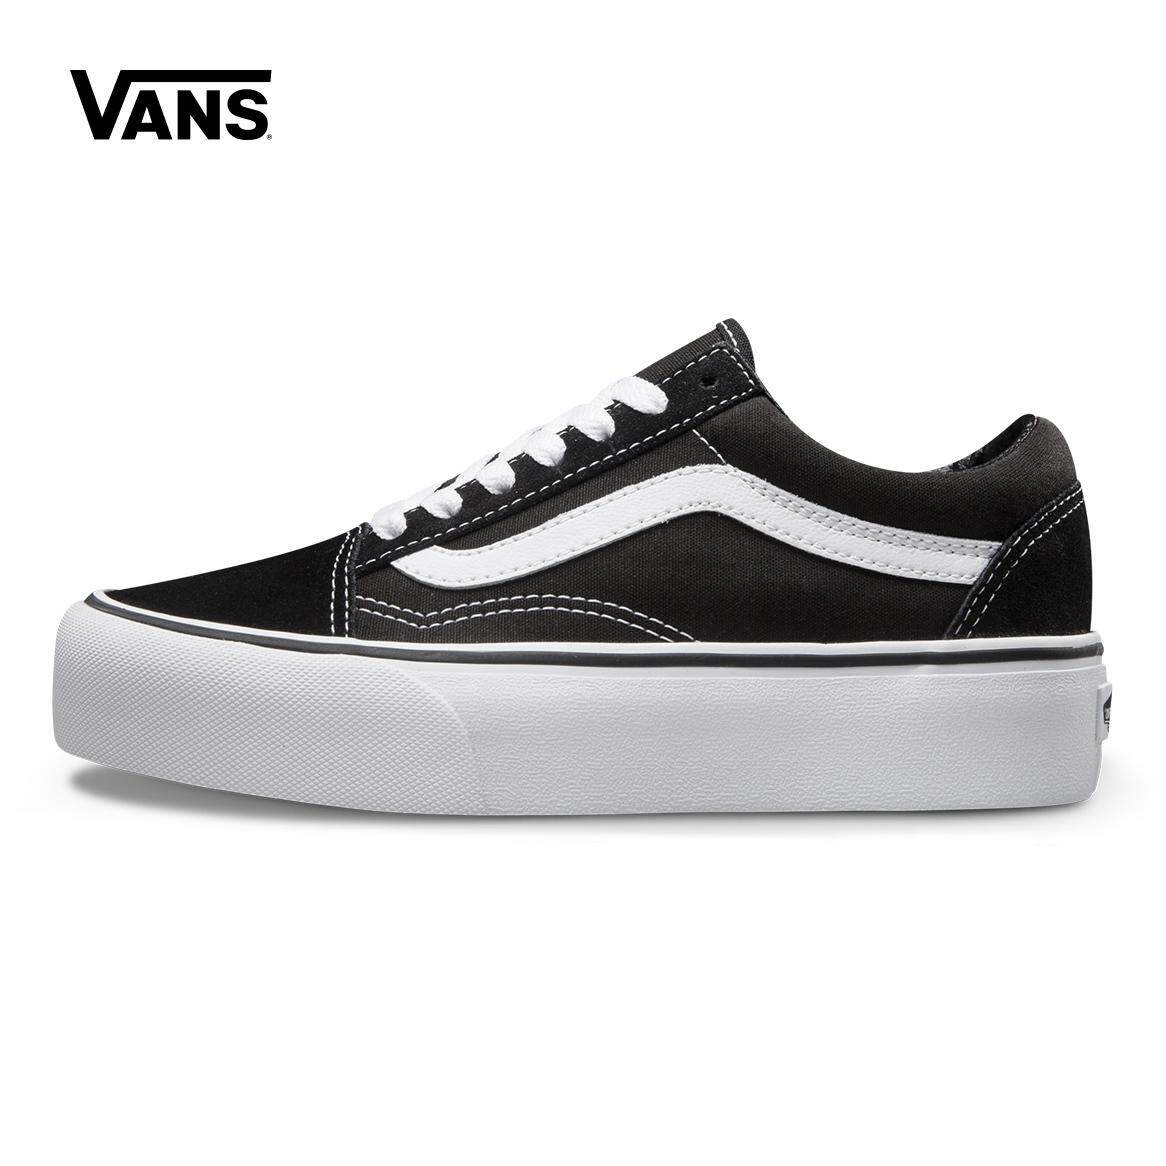 Vans Women s Shoes Leisure Skateboard Shoes Platform CLASSIC BLACK WHITE  Muffin Platform Shoes VN0A3B3UY28 cb039f1769